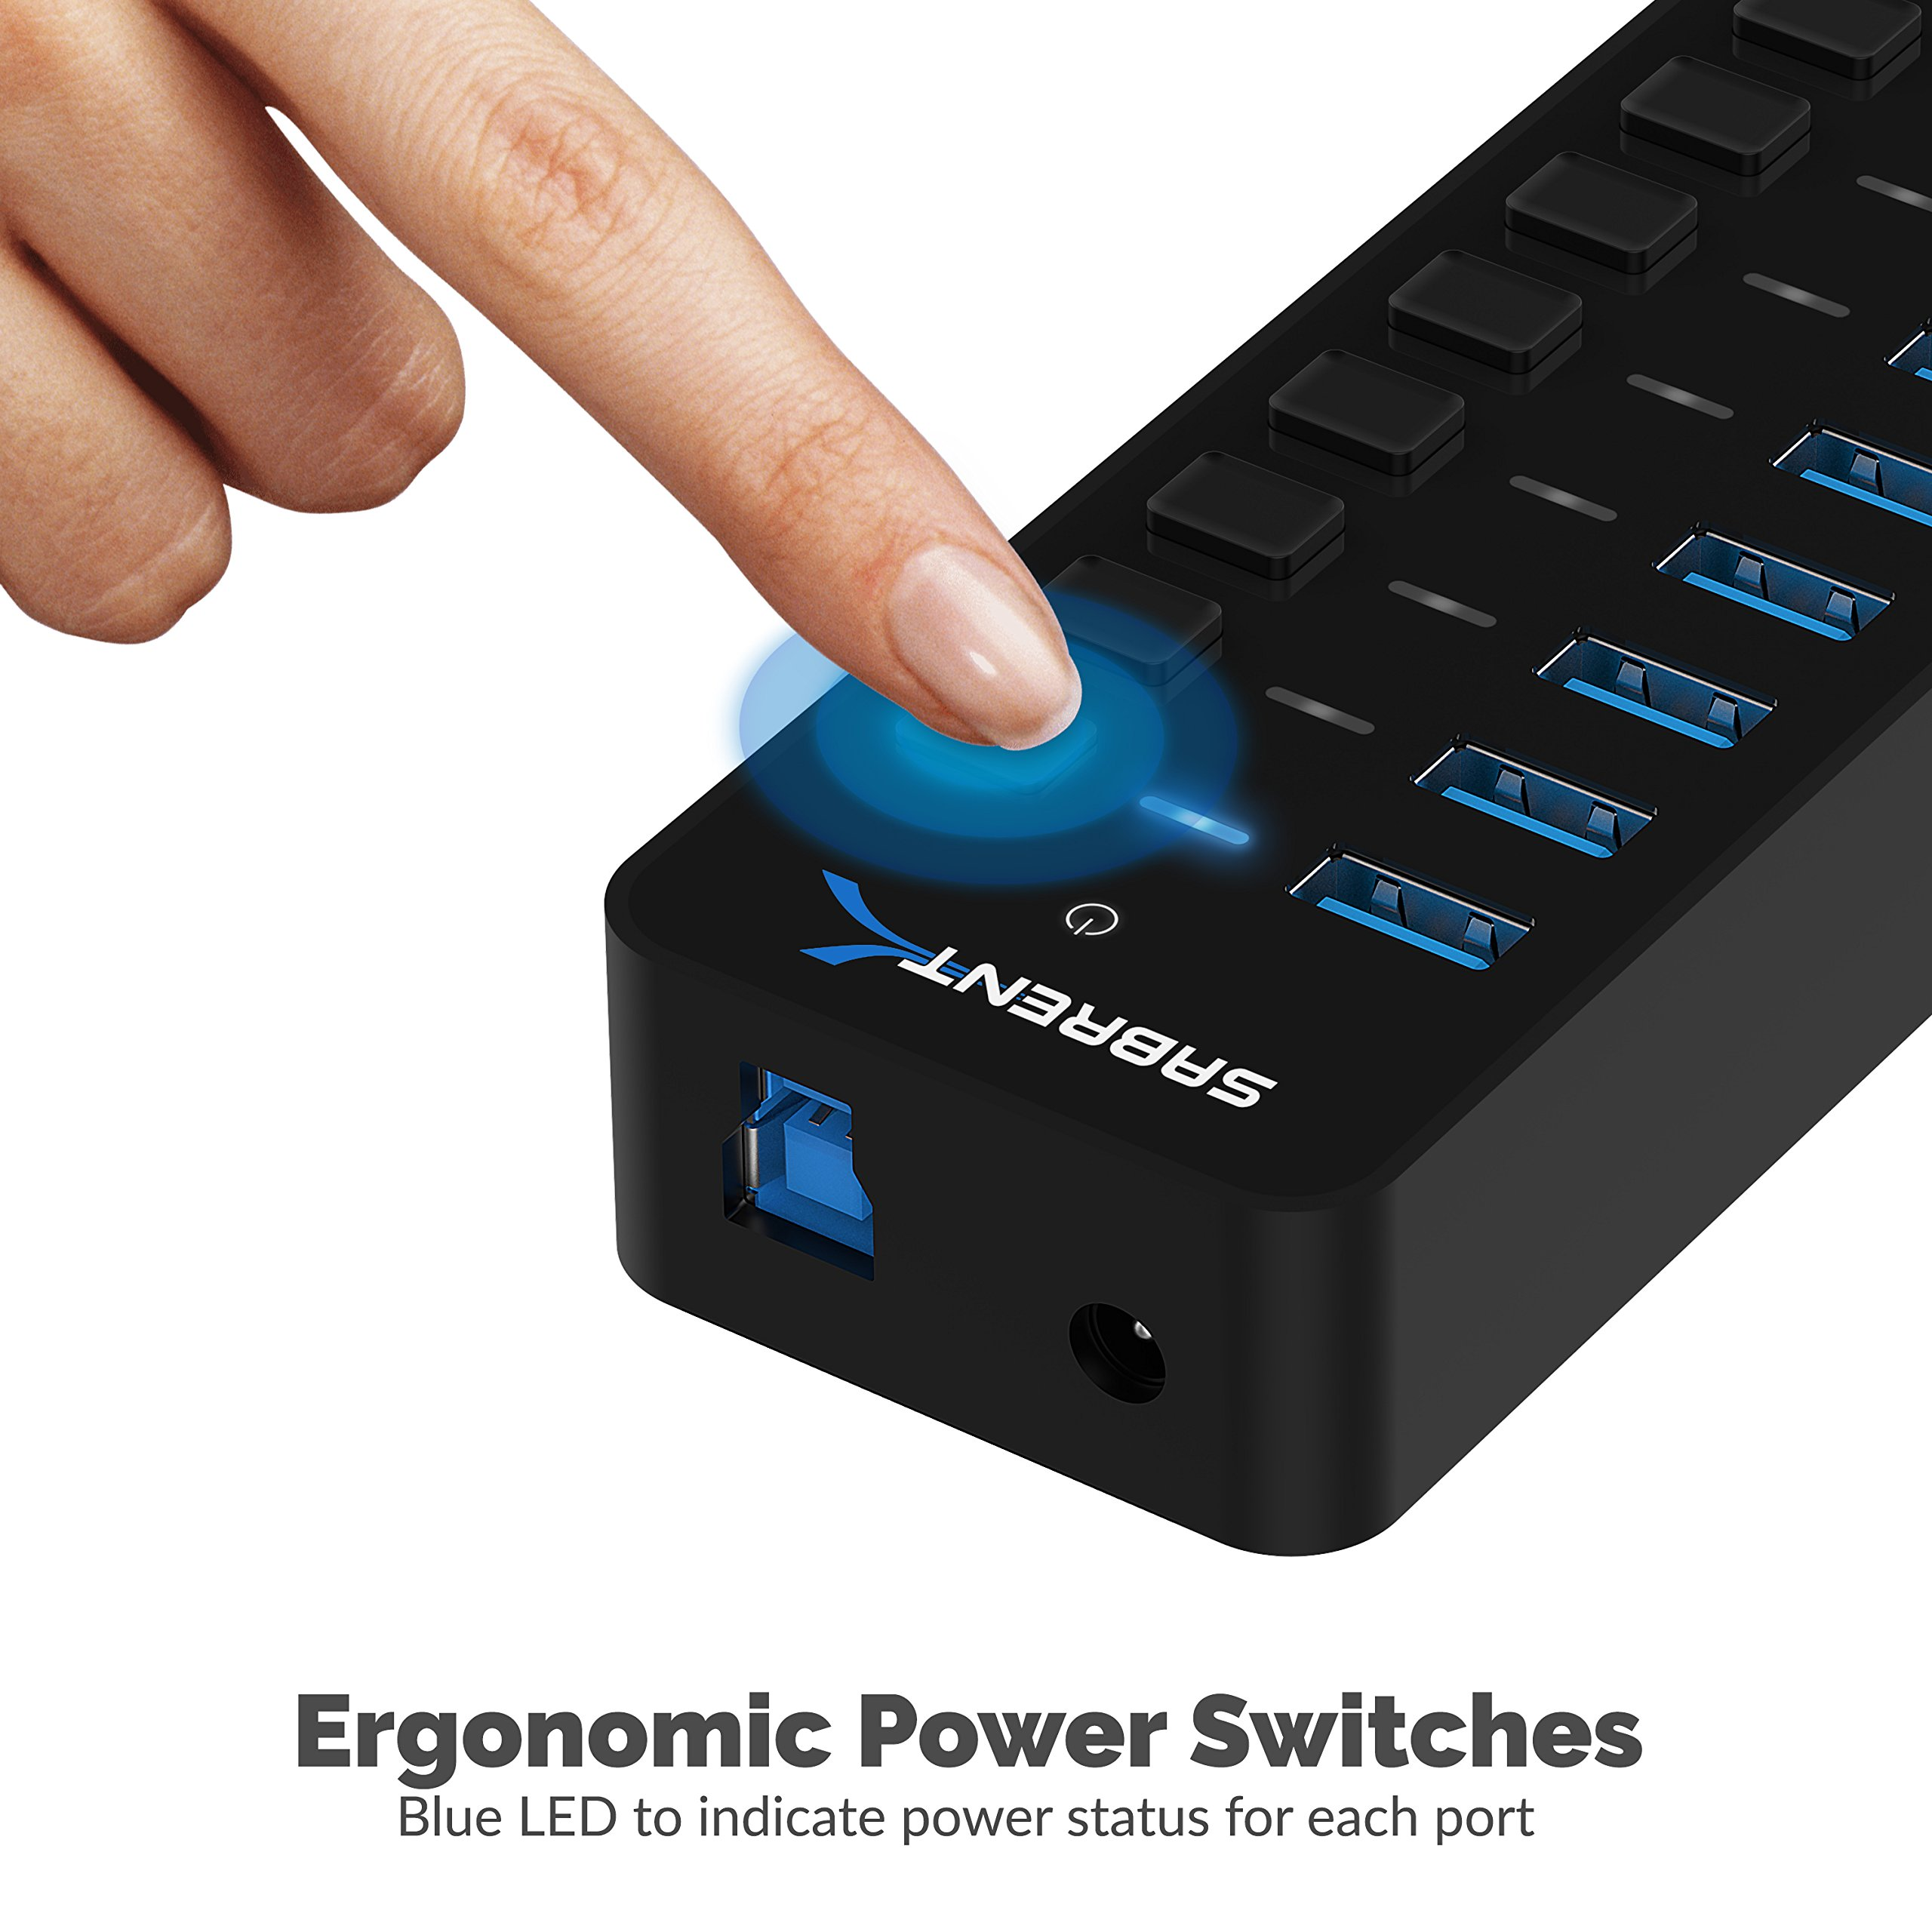 Sabrent 60W 7-Port USB 3.0 Hub + 3 Smart Charging Ports with Individual Power Switches and LEDs includes 60W 12V/5A power adapter (HB-B7C3) by Sabrent (Image #6)